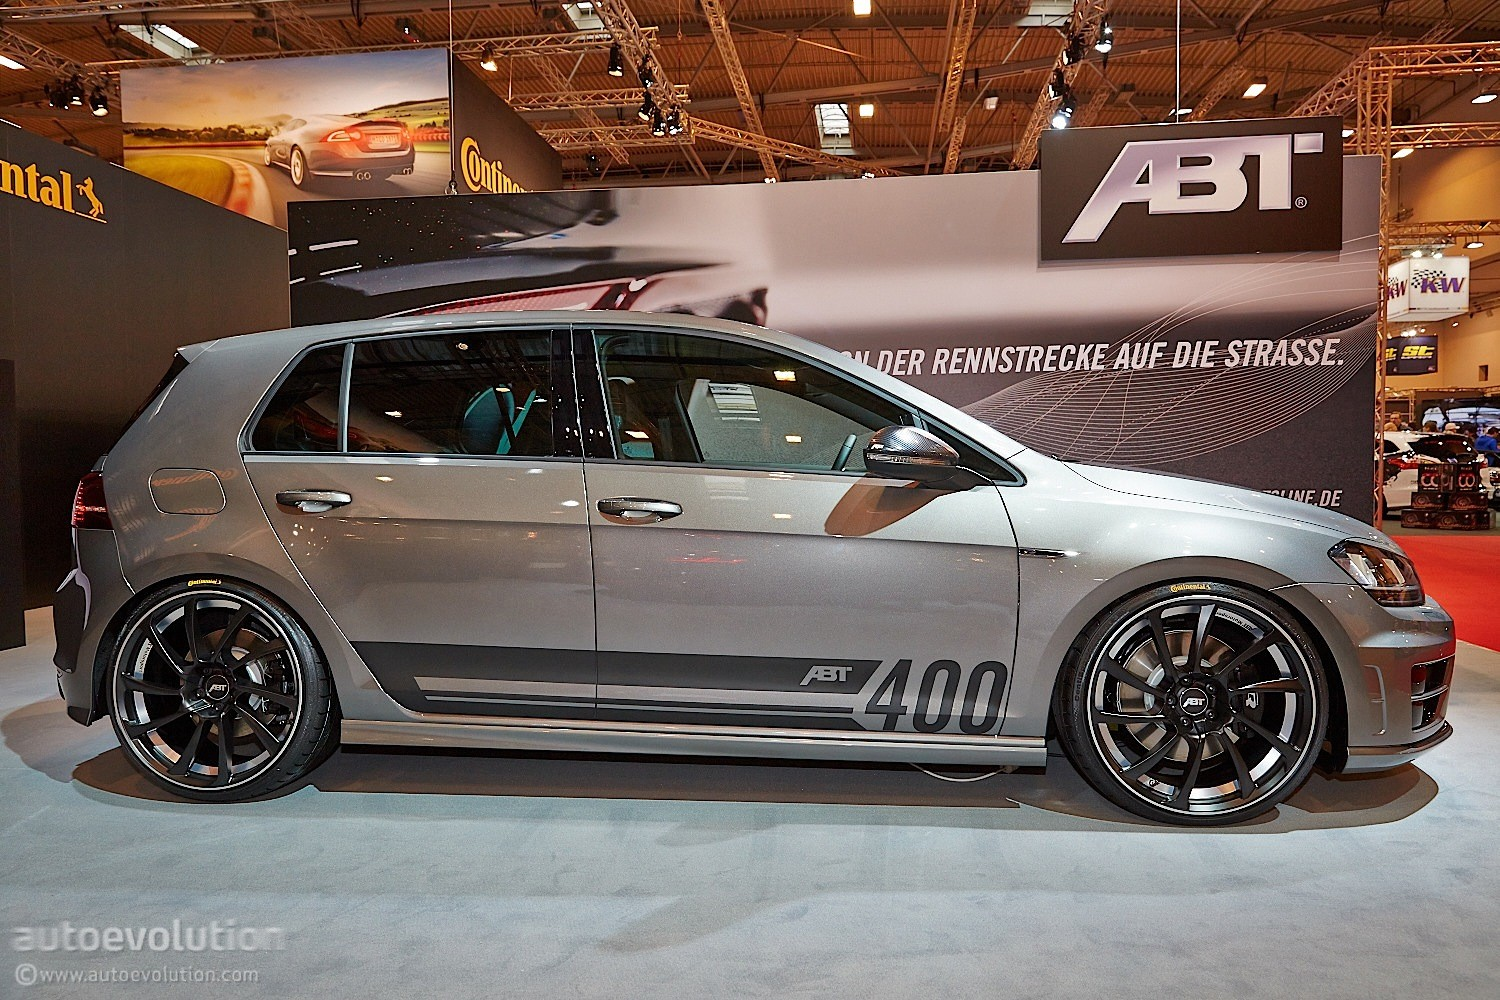 How Much Is A Catalytic Converter >> Golf R Goes Mental With 400 HP Tuning Kit from ABT in Essen [Live Photos] - autoevolution